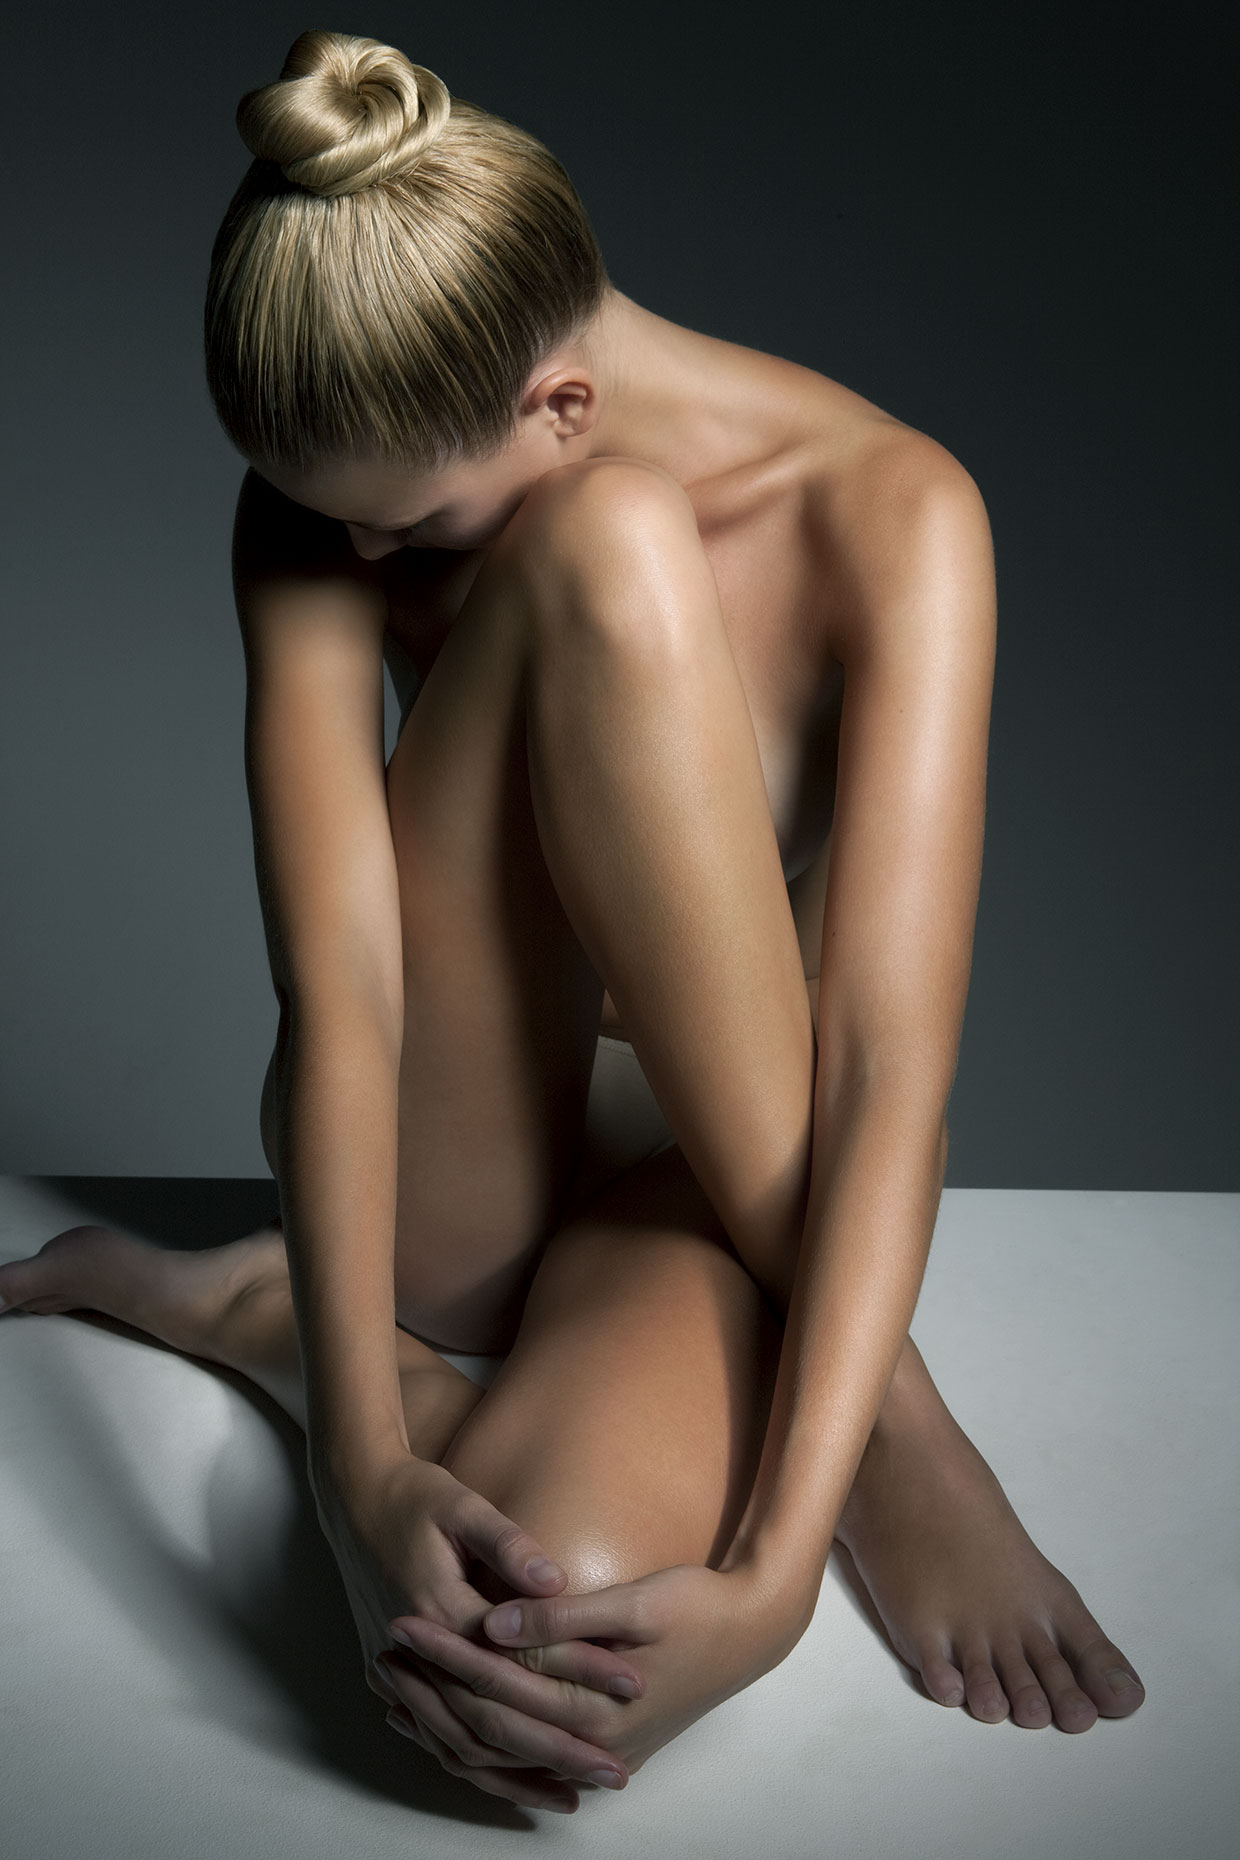 Naked woman with shiny hair do sitting, side view.